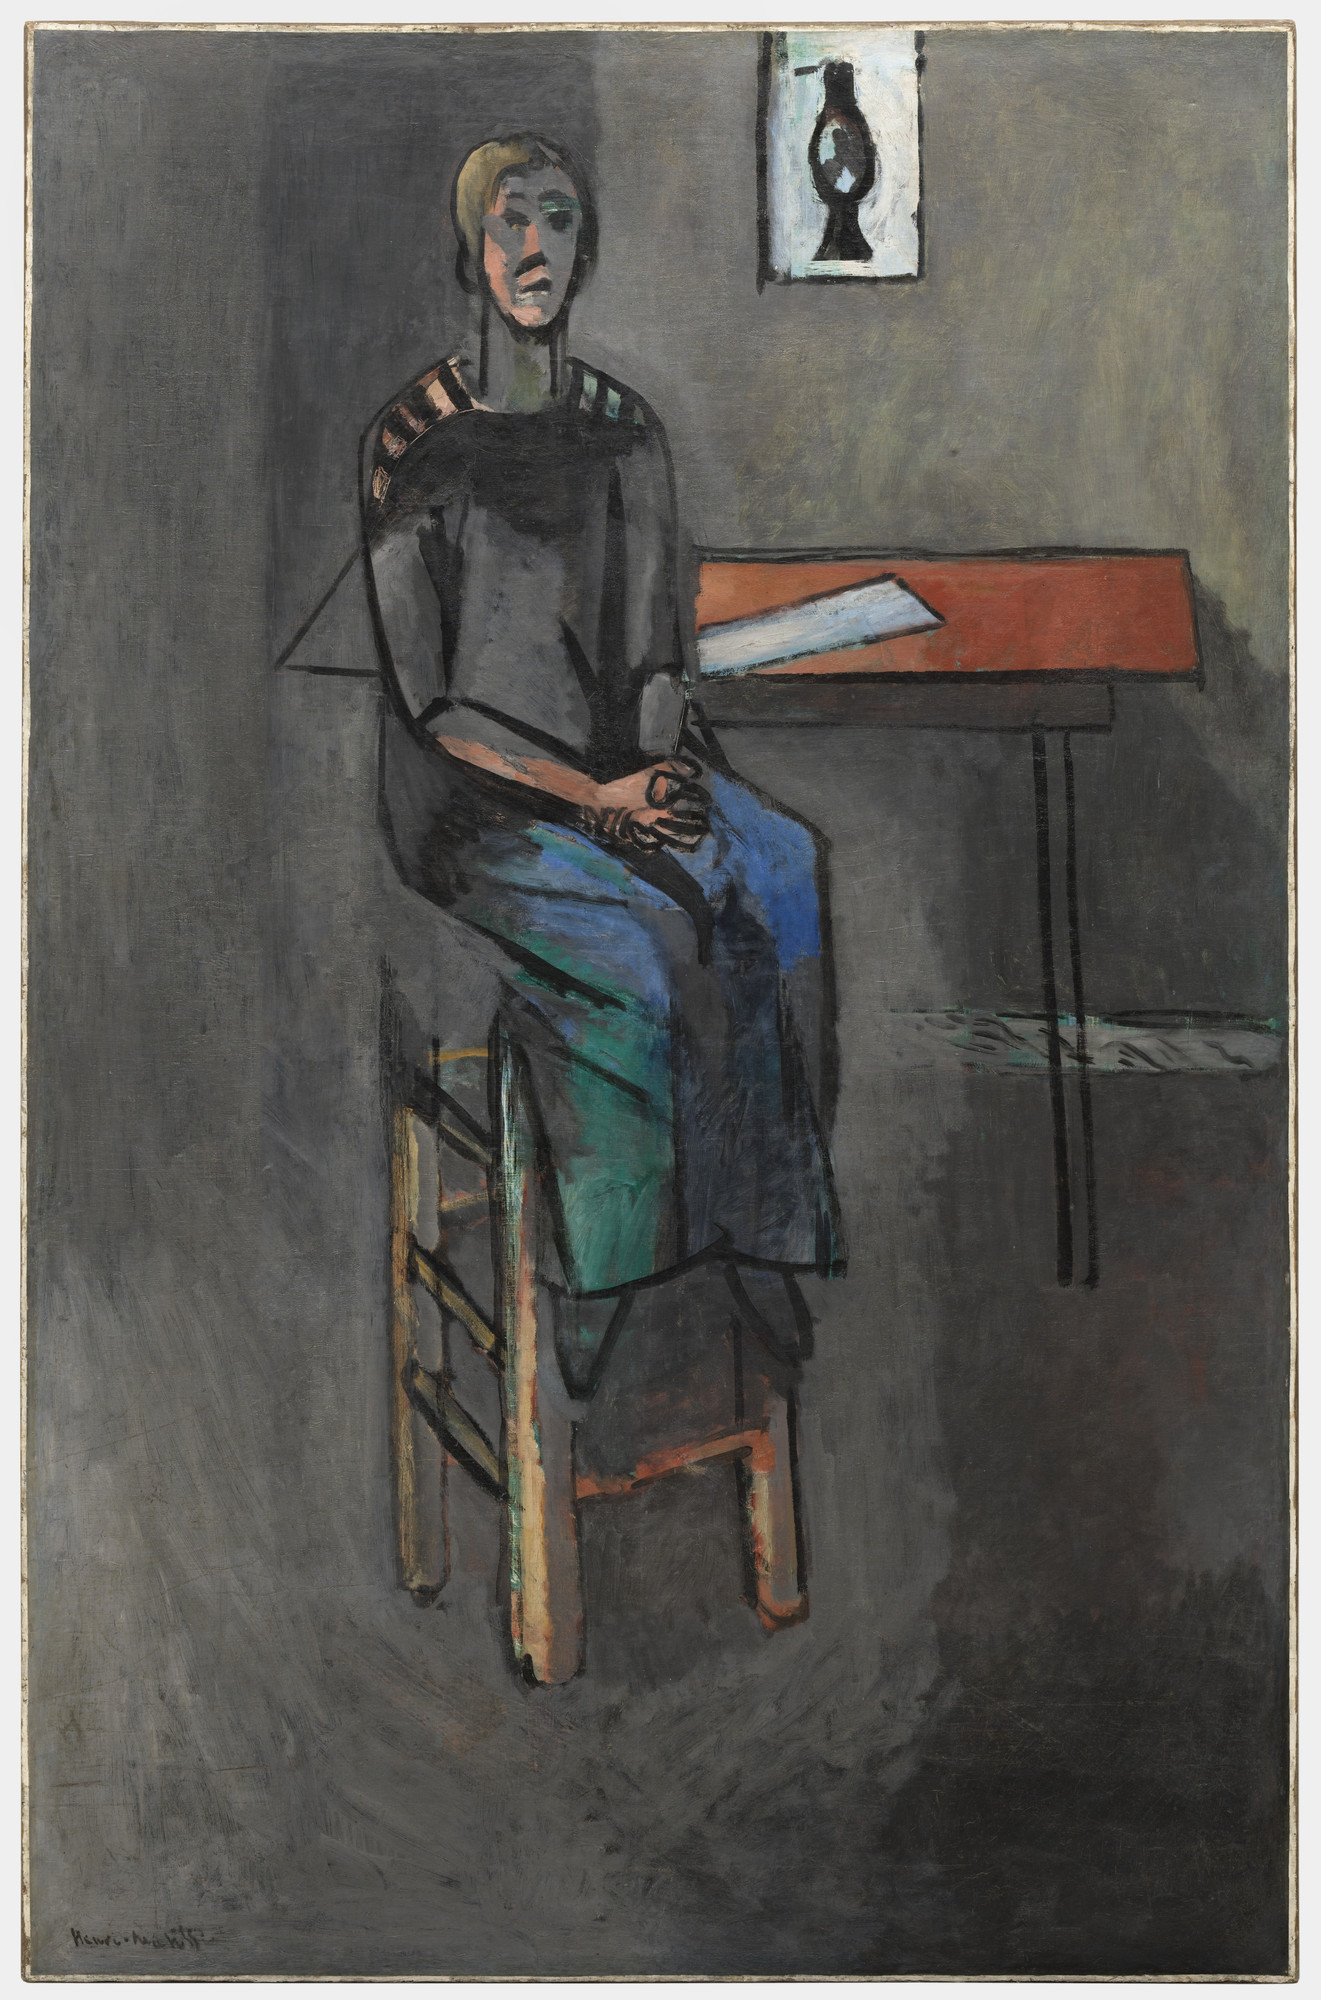 Henri Matisse. Woman on a High Stool (Germaine Raynal). Paris, quai Saint-Michel, early 1914